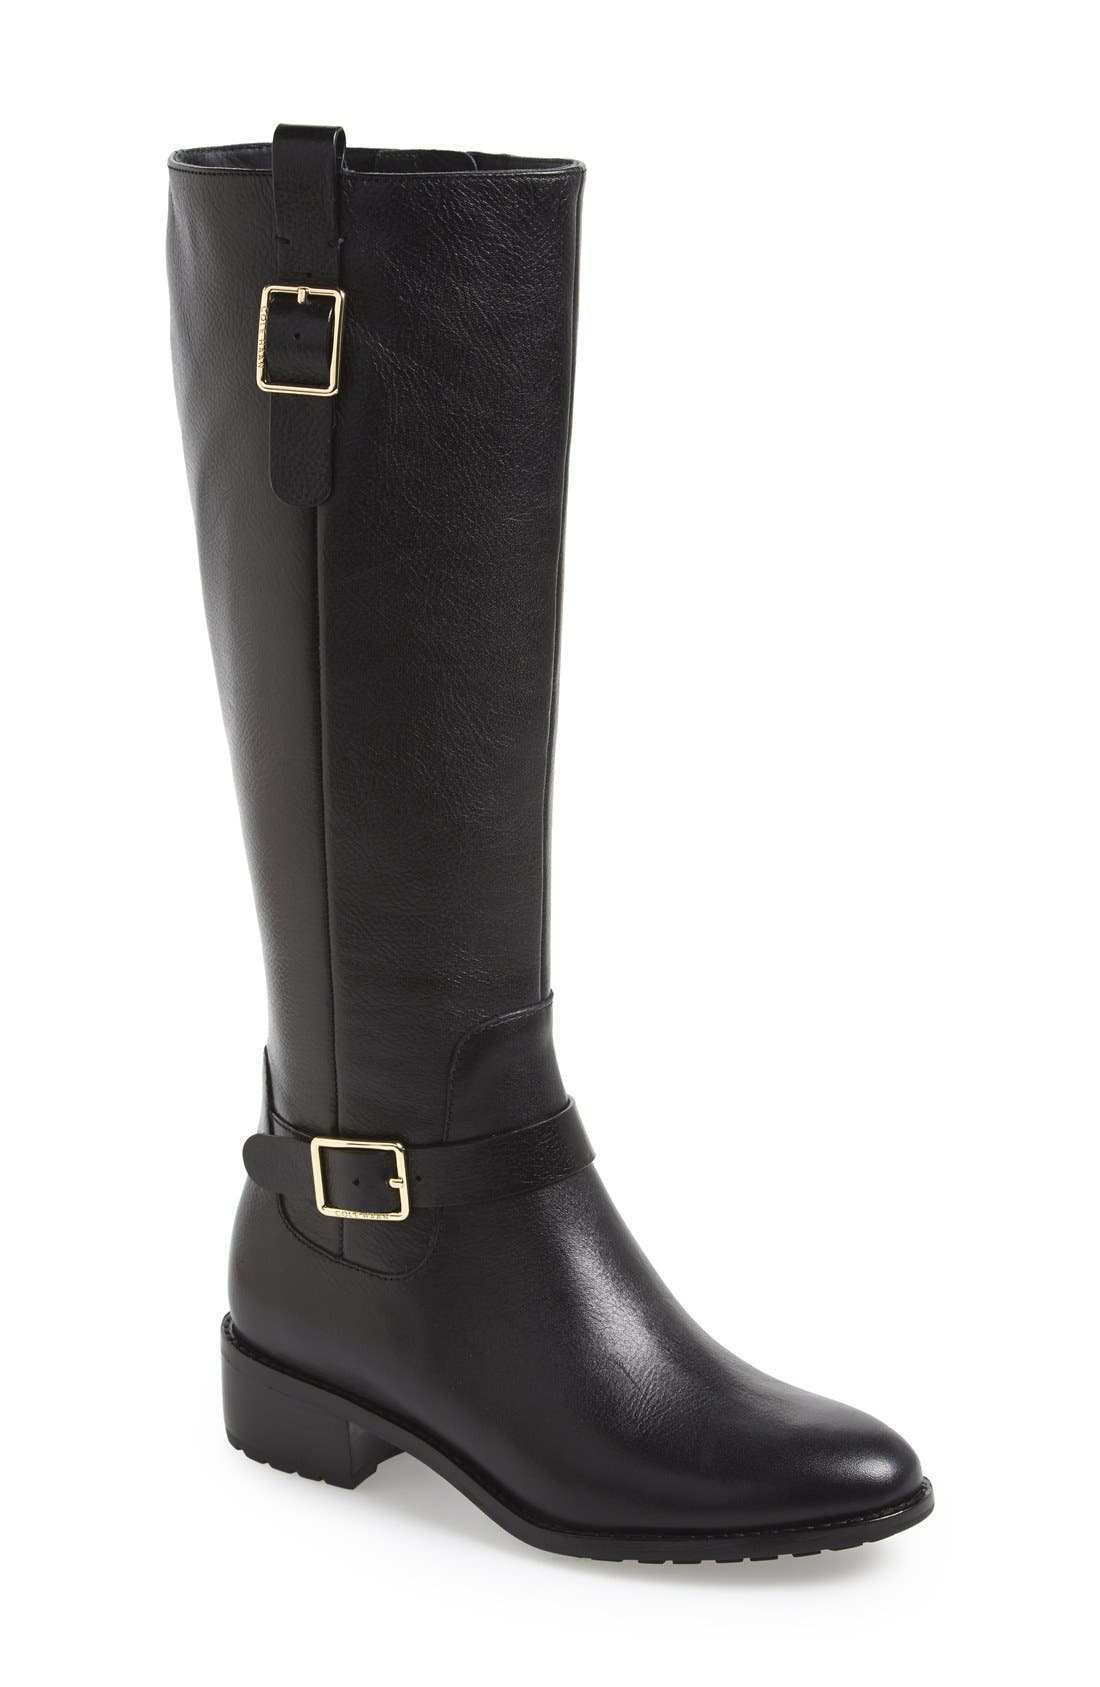 Main Image - Cole Haan 'Kenmare' Riding Boot (Women)